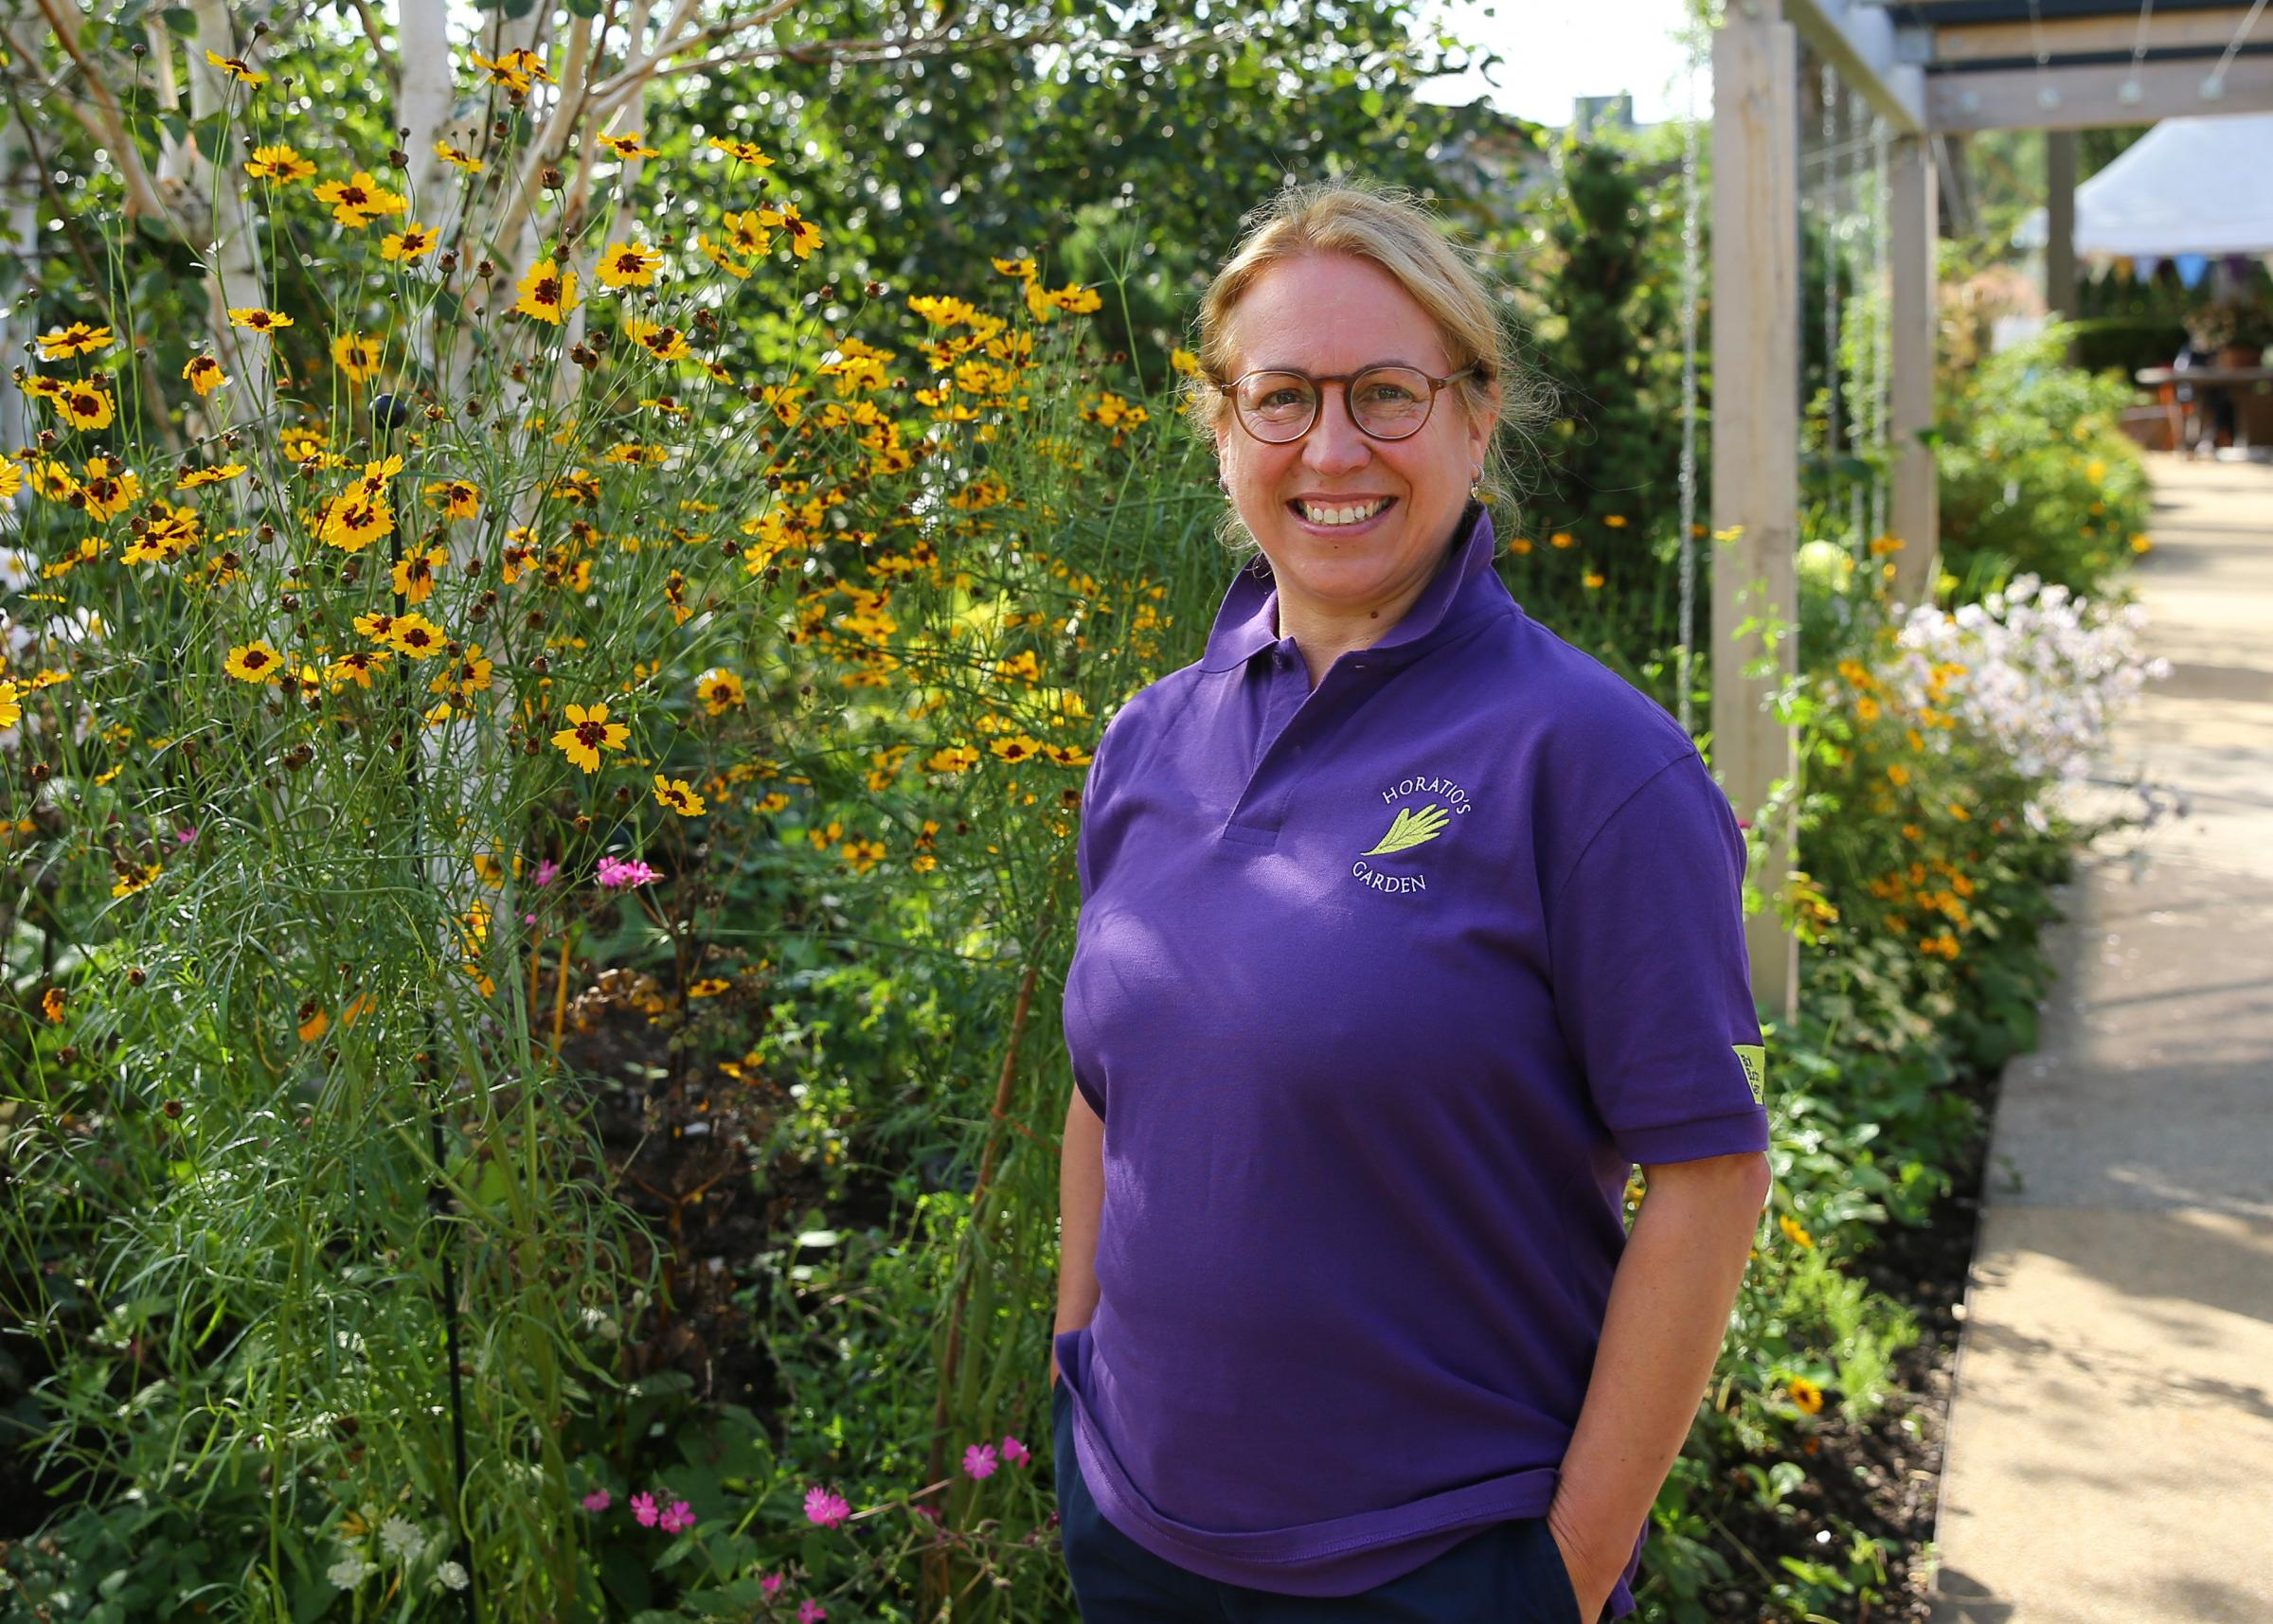 Sallie Sillars, head gardener and horticultural therapist at Horatios Garden. Photograph by Colin Mearns.